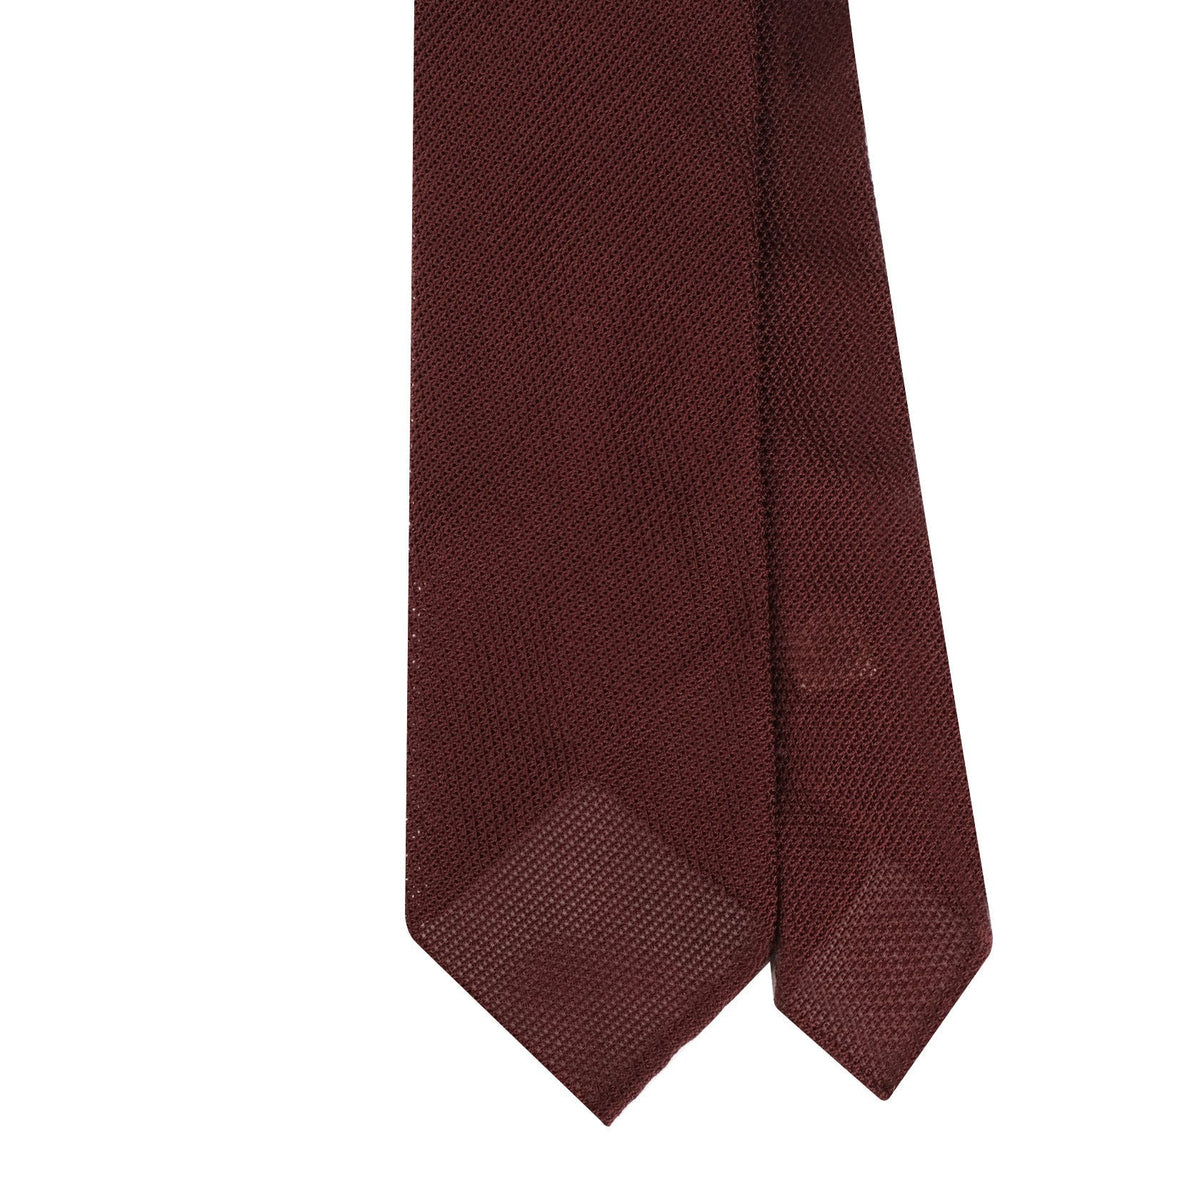 Grenadine Garza Fina Untipped Tie - Burgundy